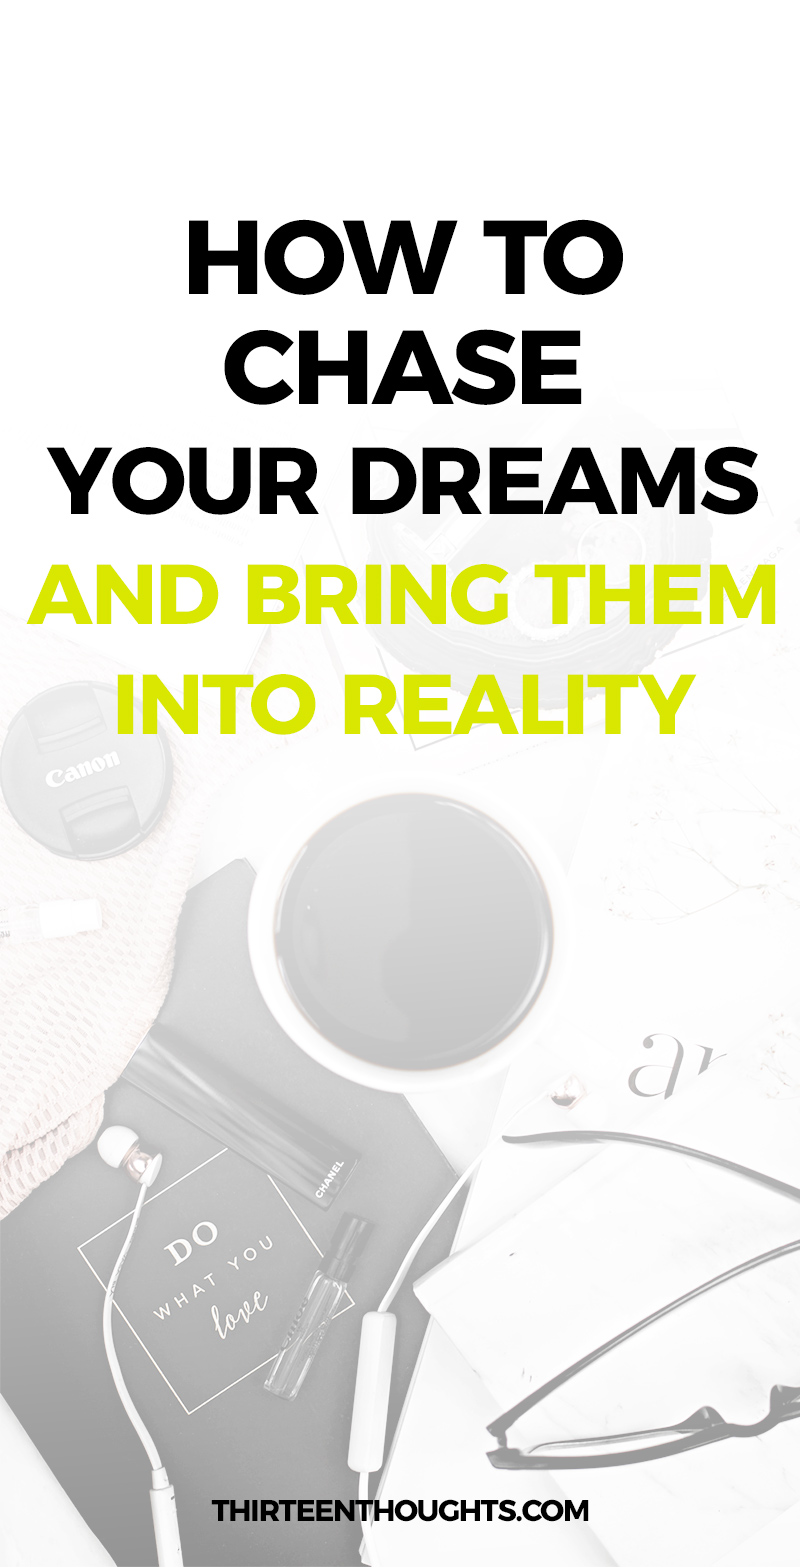 How to Chase Your Dreams